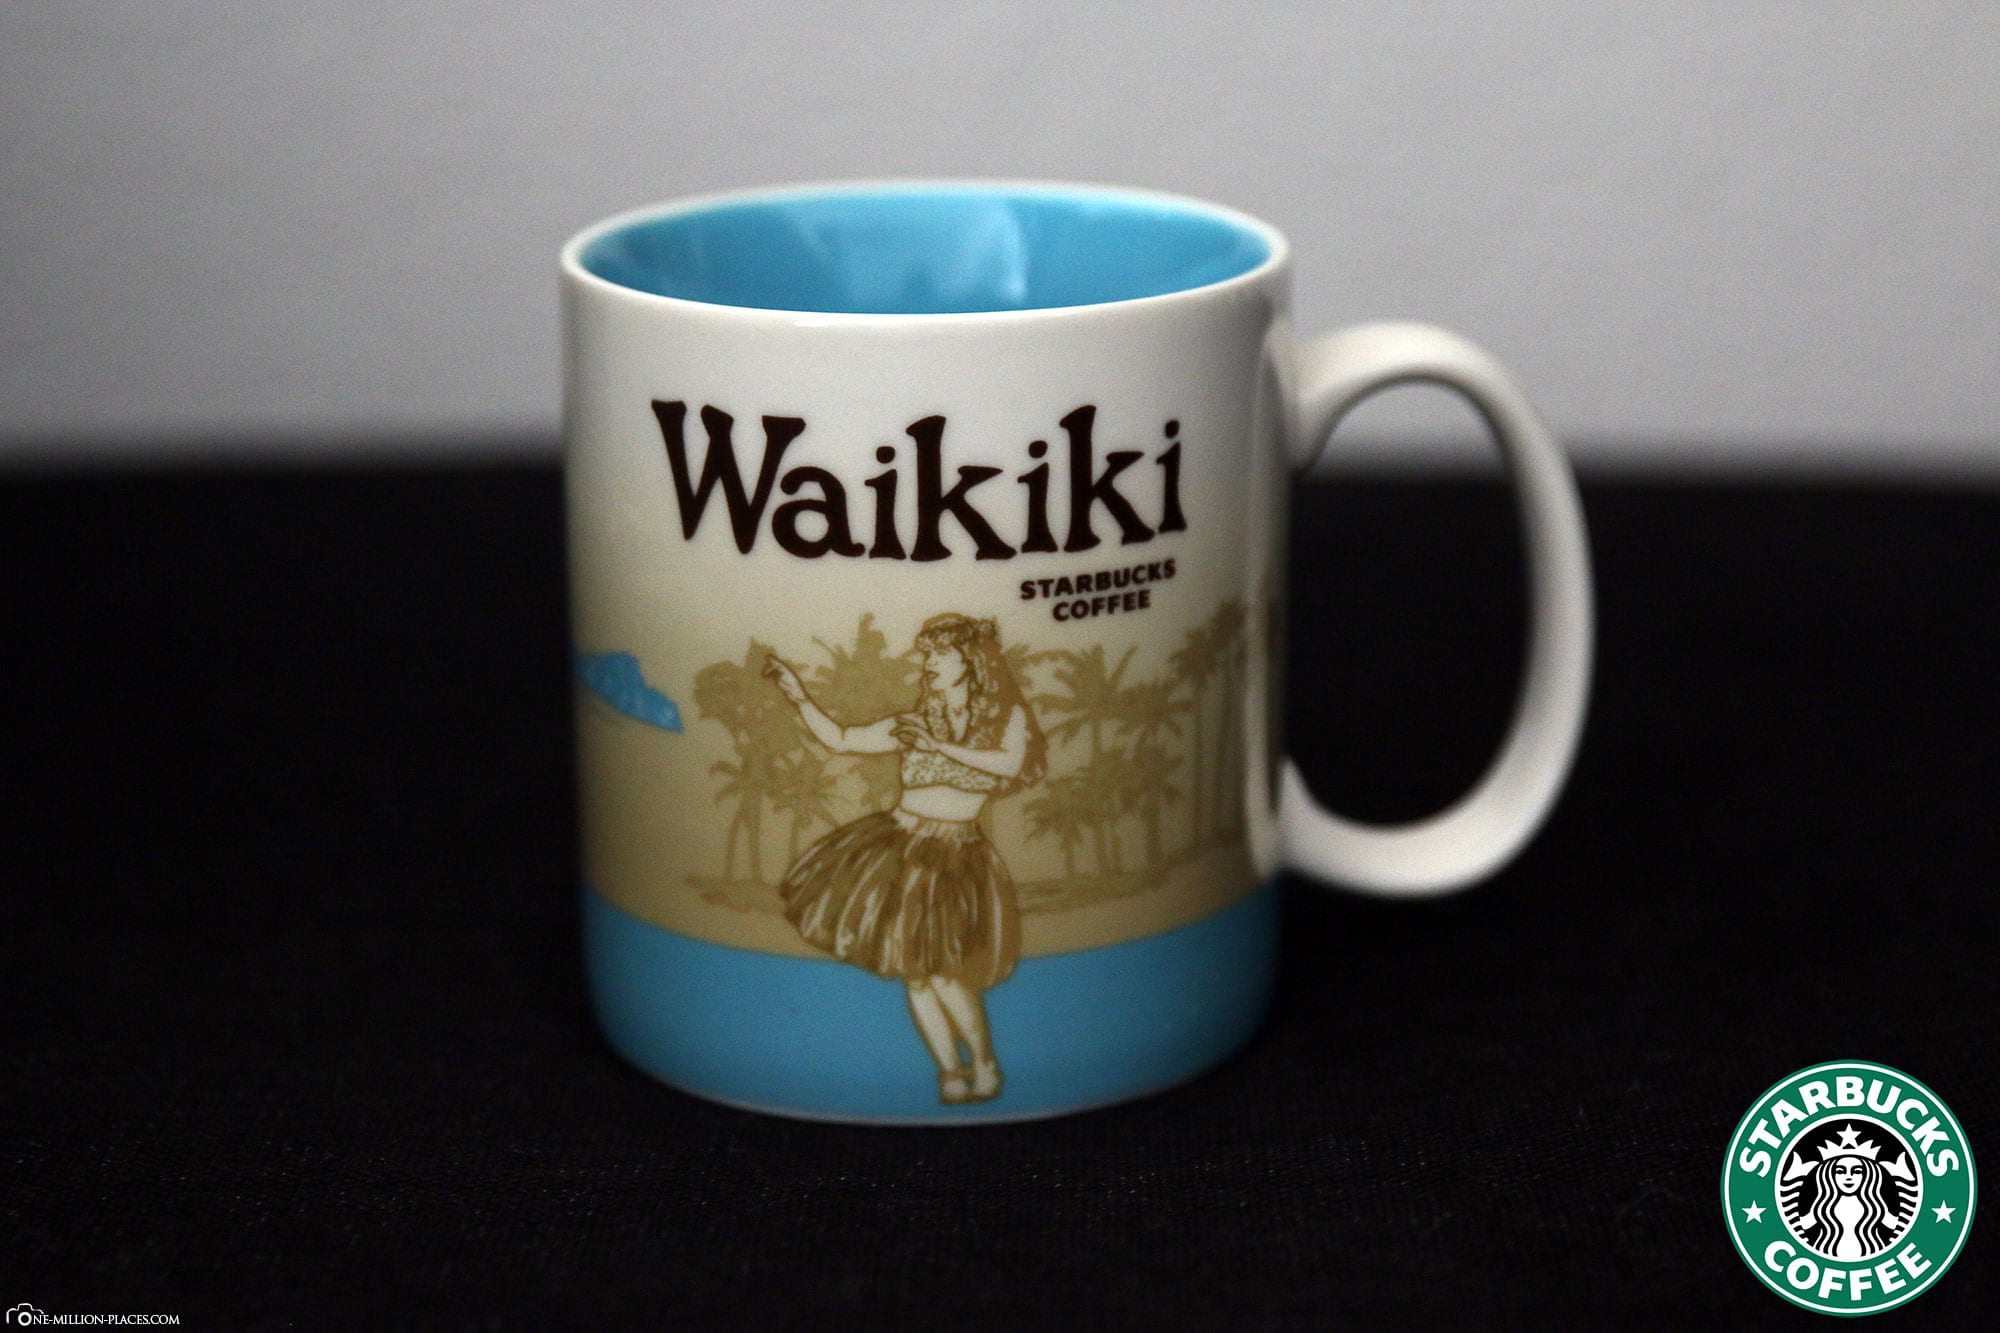 Waikiki, Starbucks Tasse, Global Icon Serie, City Mugs, Sammlung, Hawaii, Reisebericht